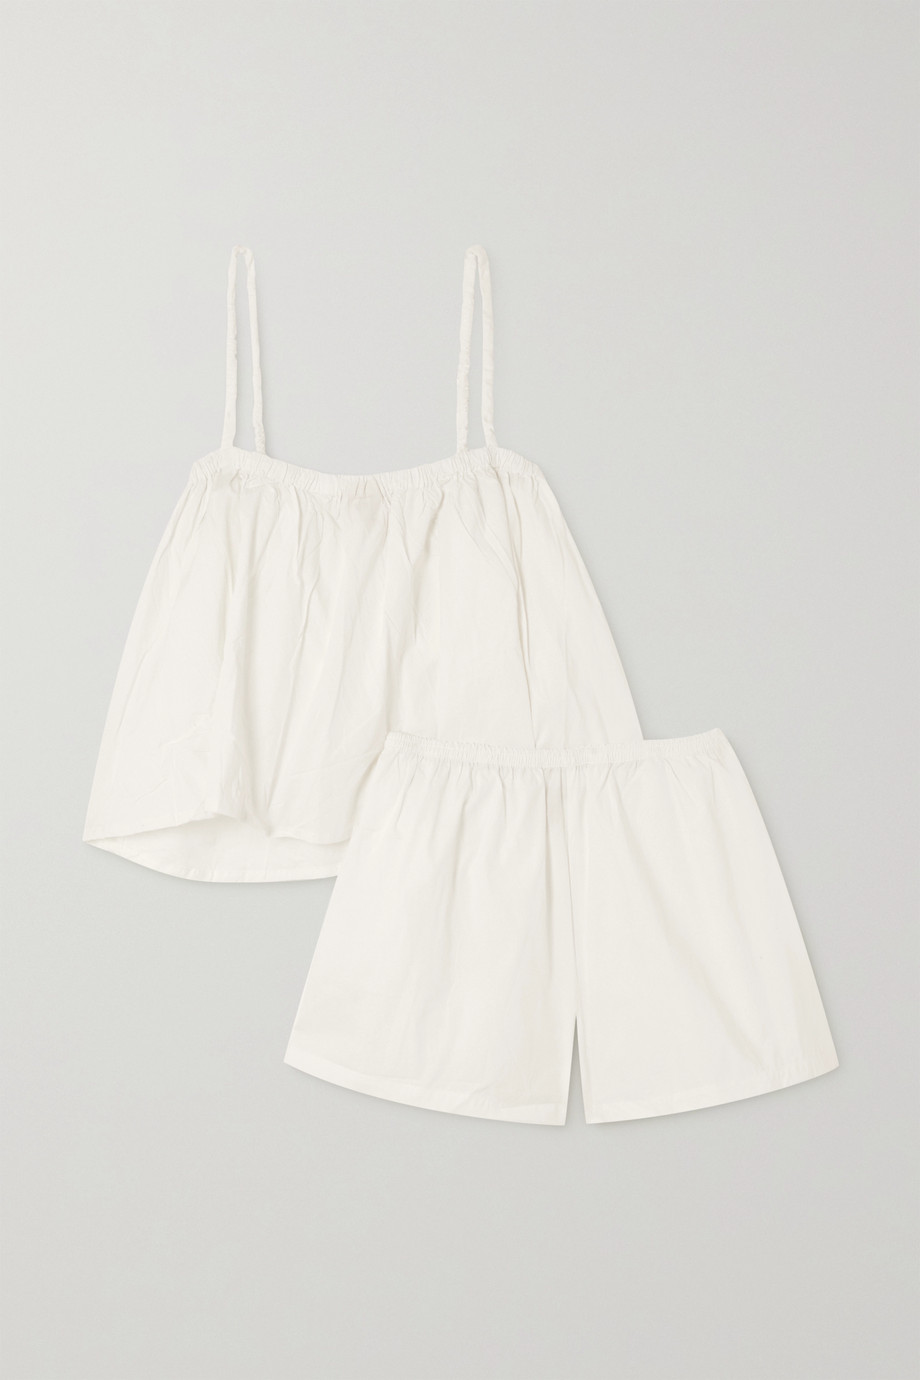 DEIJI STUDIOS Gathered organic cotton-poplin camisole and shorts set